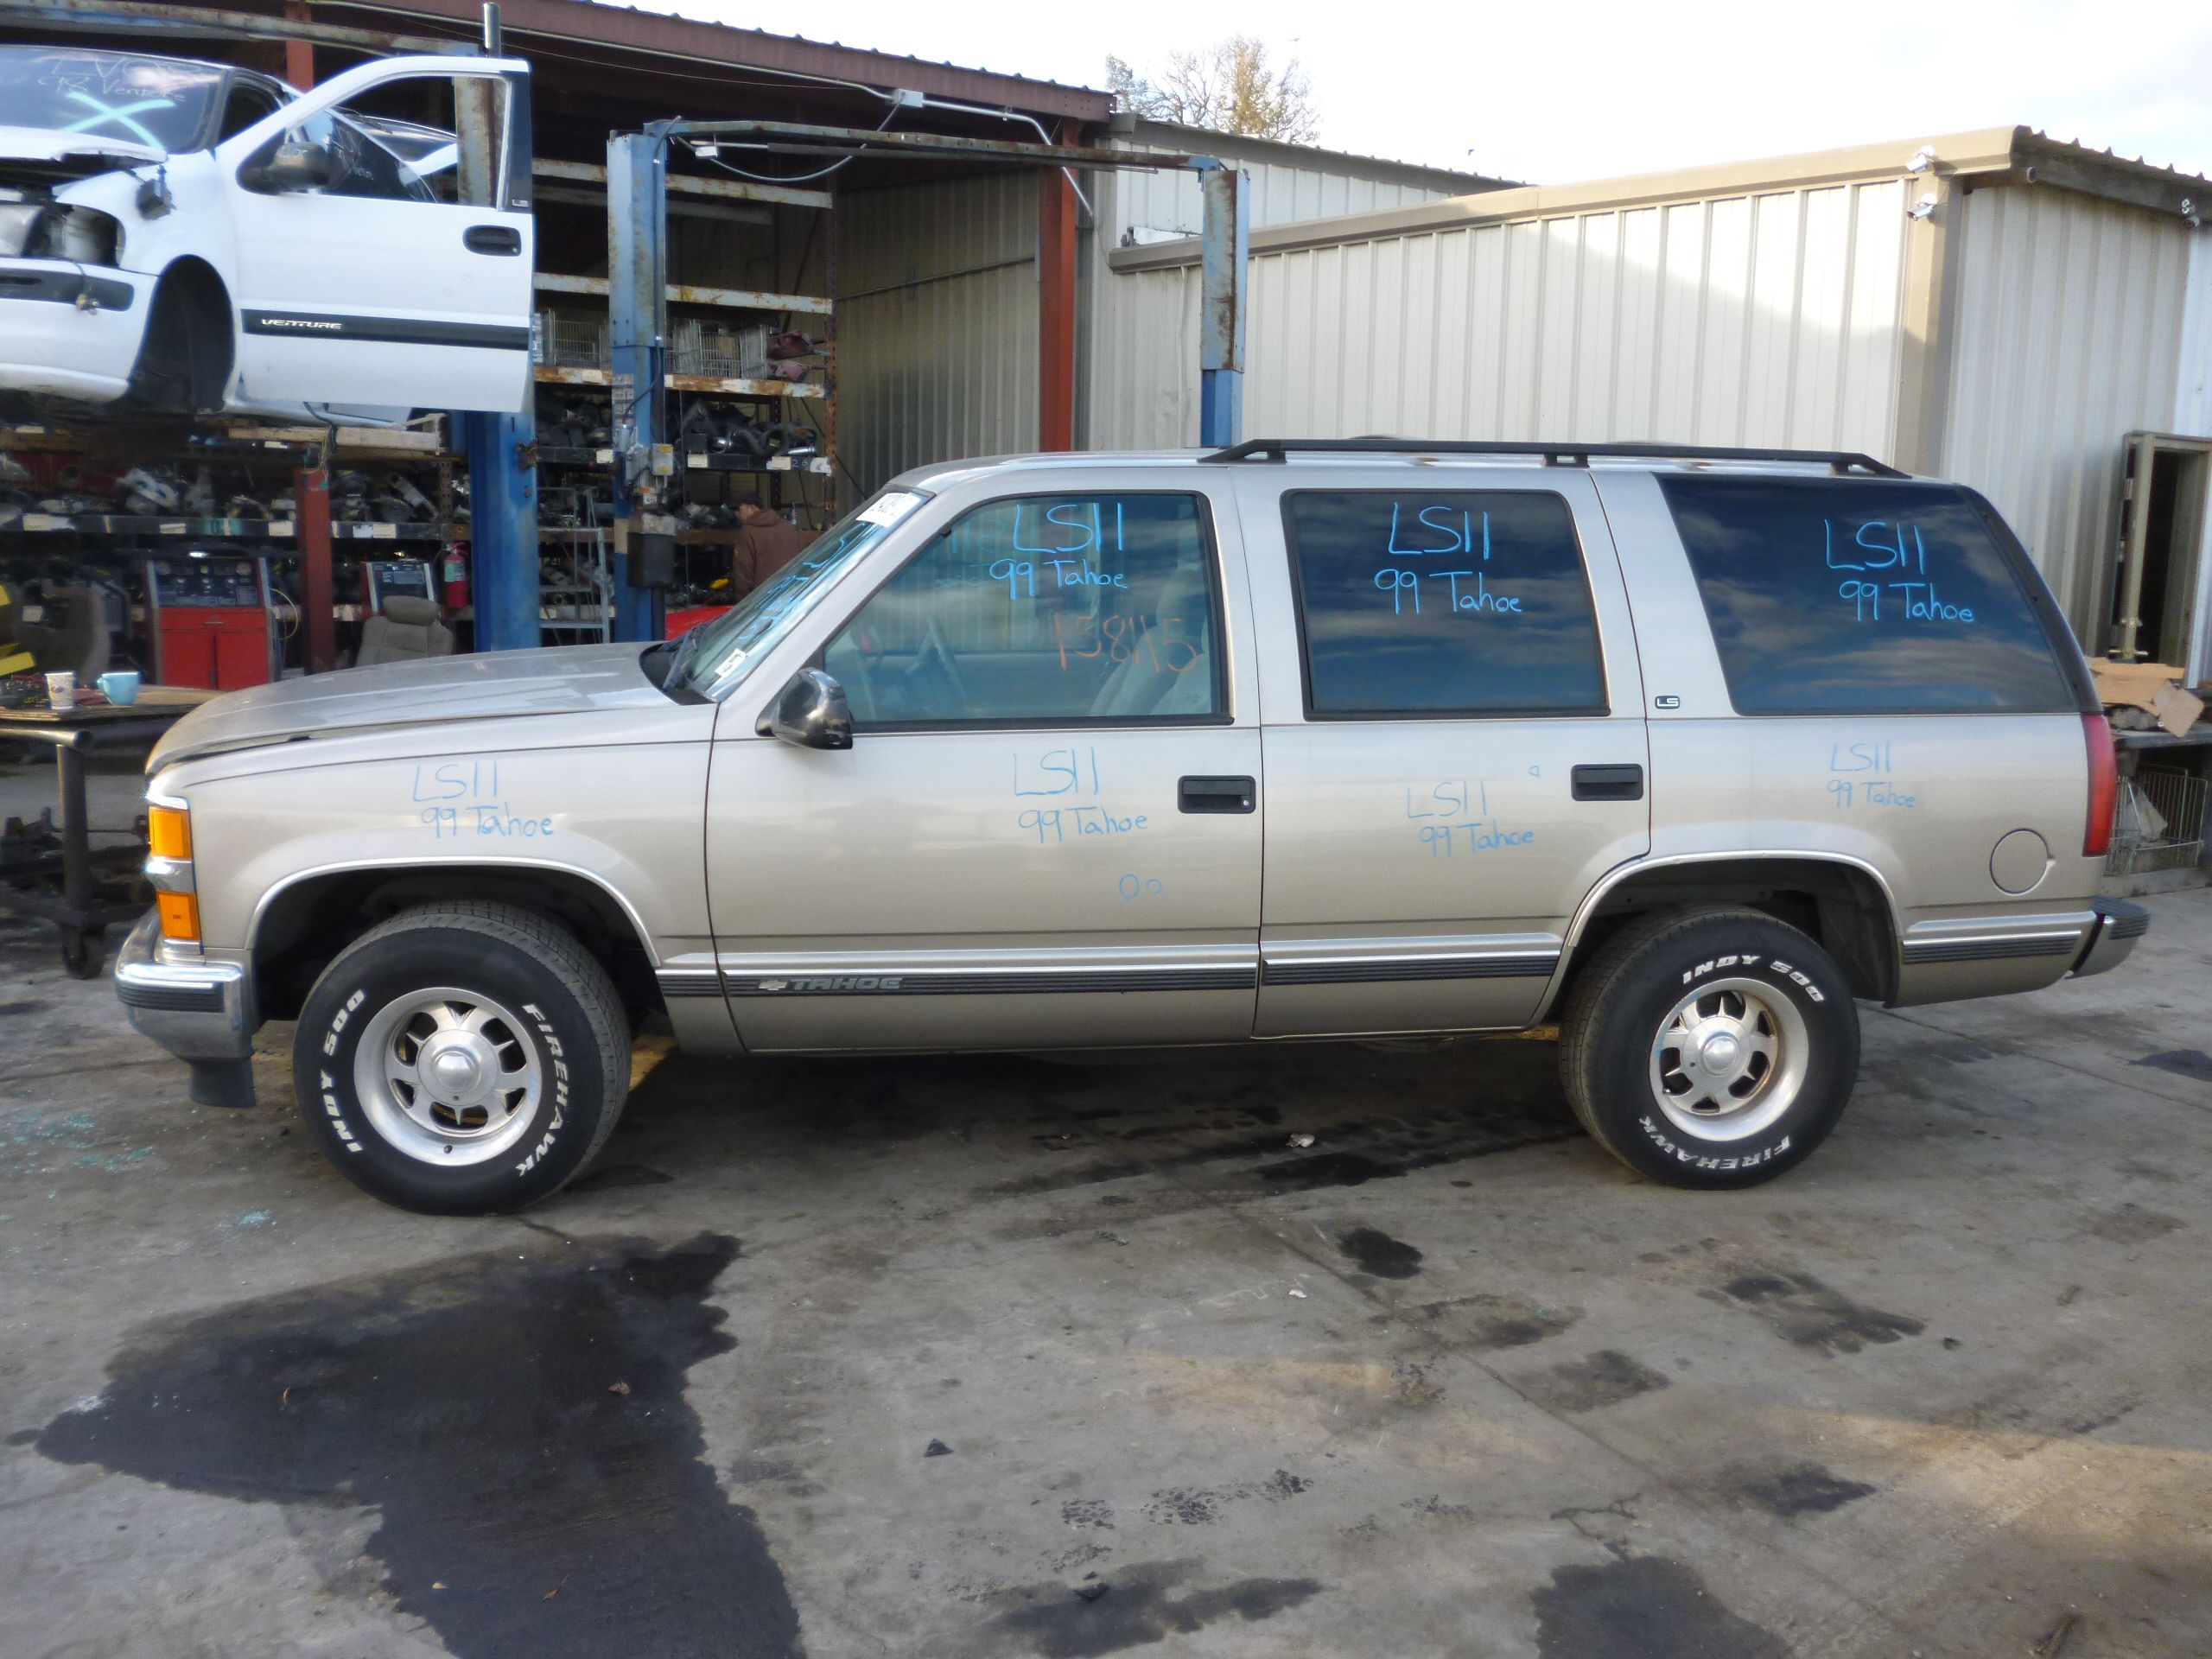 1999 chevy tahoe 4 door 2wd 5 7l 158k miles ball joint brake pads brake rotors brakes catalytic converter cold air intake control arm exhaust manifold fog